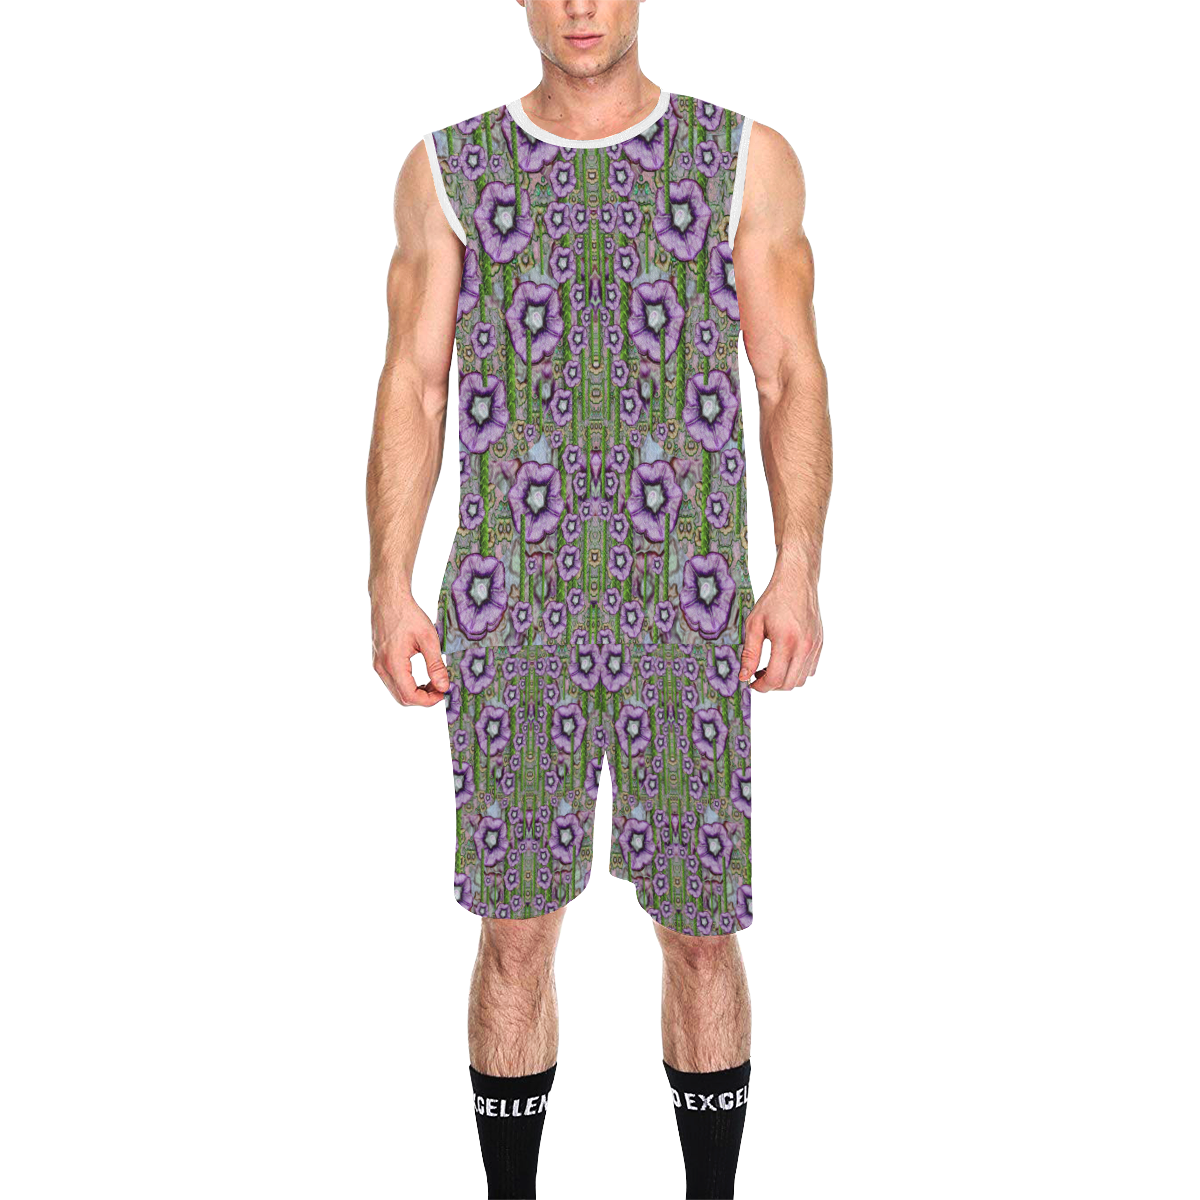 Jungle fantasy flowers climbing to be in freedom All Over Print Basketball Uniform